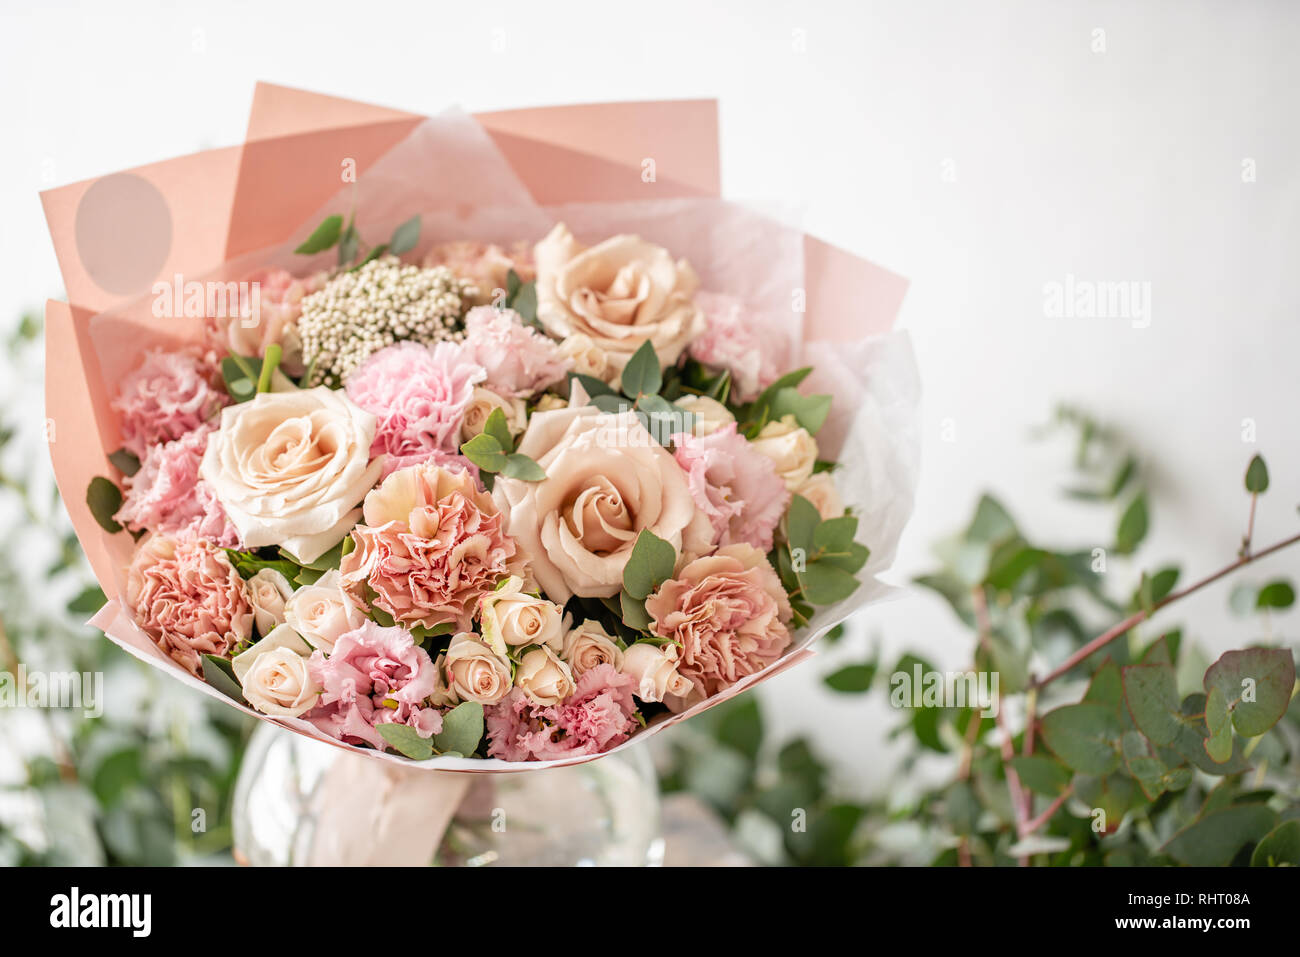 beautiful fresh cut bouquet of mixed flowers in vase on wooden table. The work of the florist at a flower shop. Delicate Pastel tones color Stock Photo